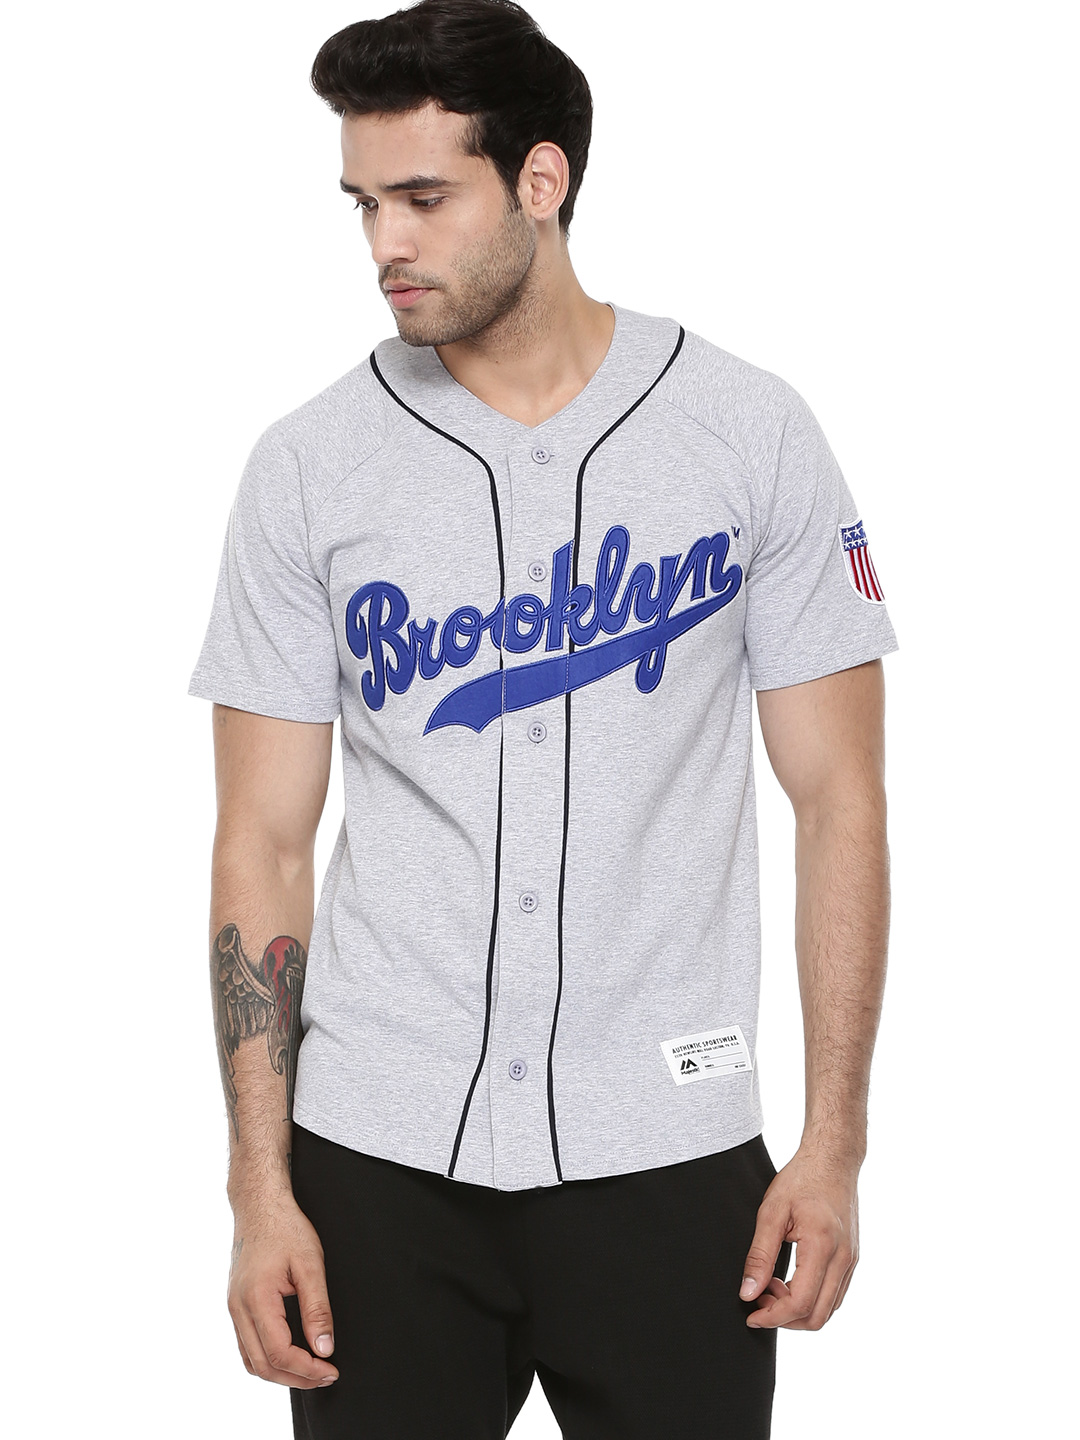 Majestic Grey Official Licensed Brooklyn Dodgers Baseball Jersey T-shirt 1